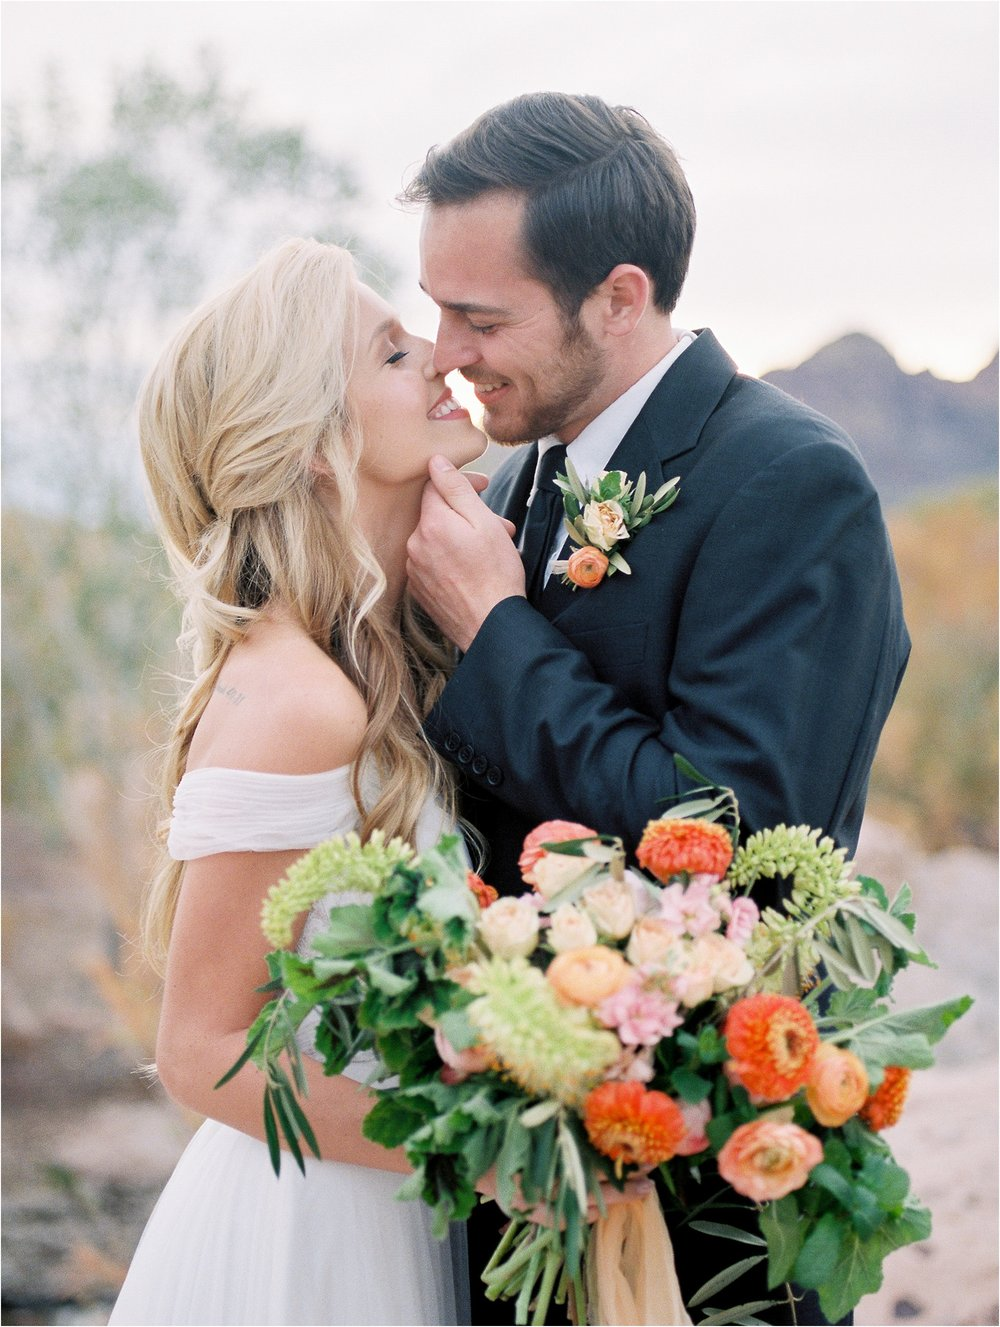 Sarah Jane Photography Film Hybrid Scottsdale Phoenix Arizona Destination Wedding Photographer Ally Ryan Desert_0018.jpg